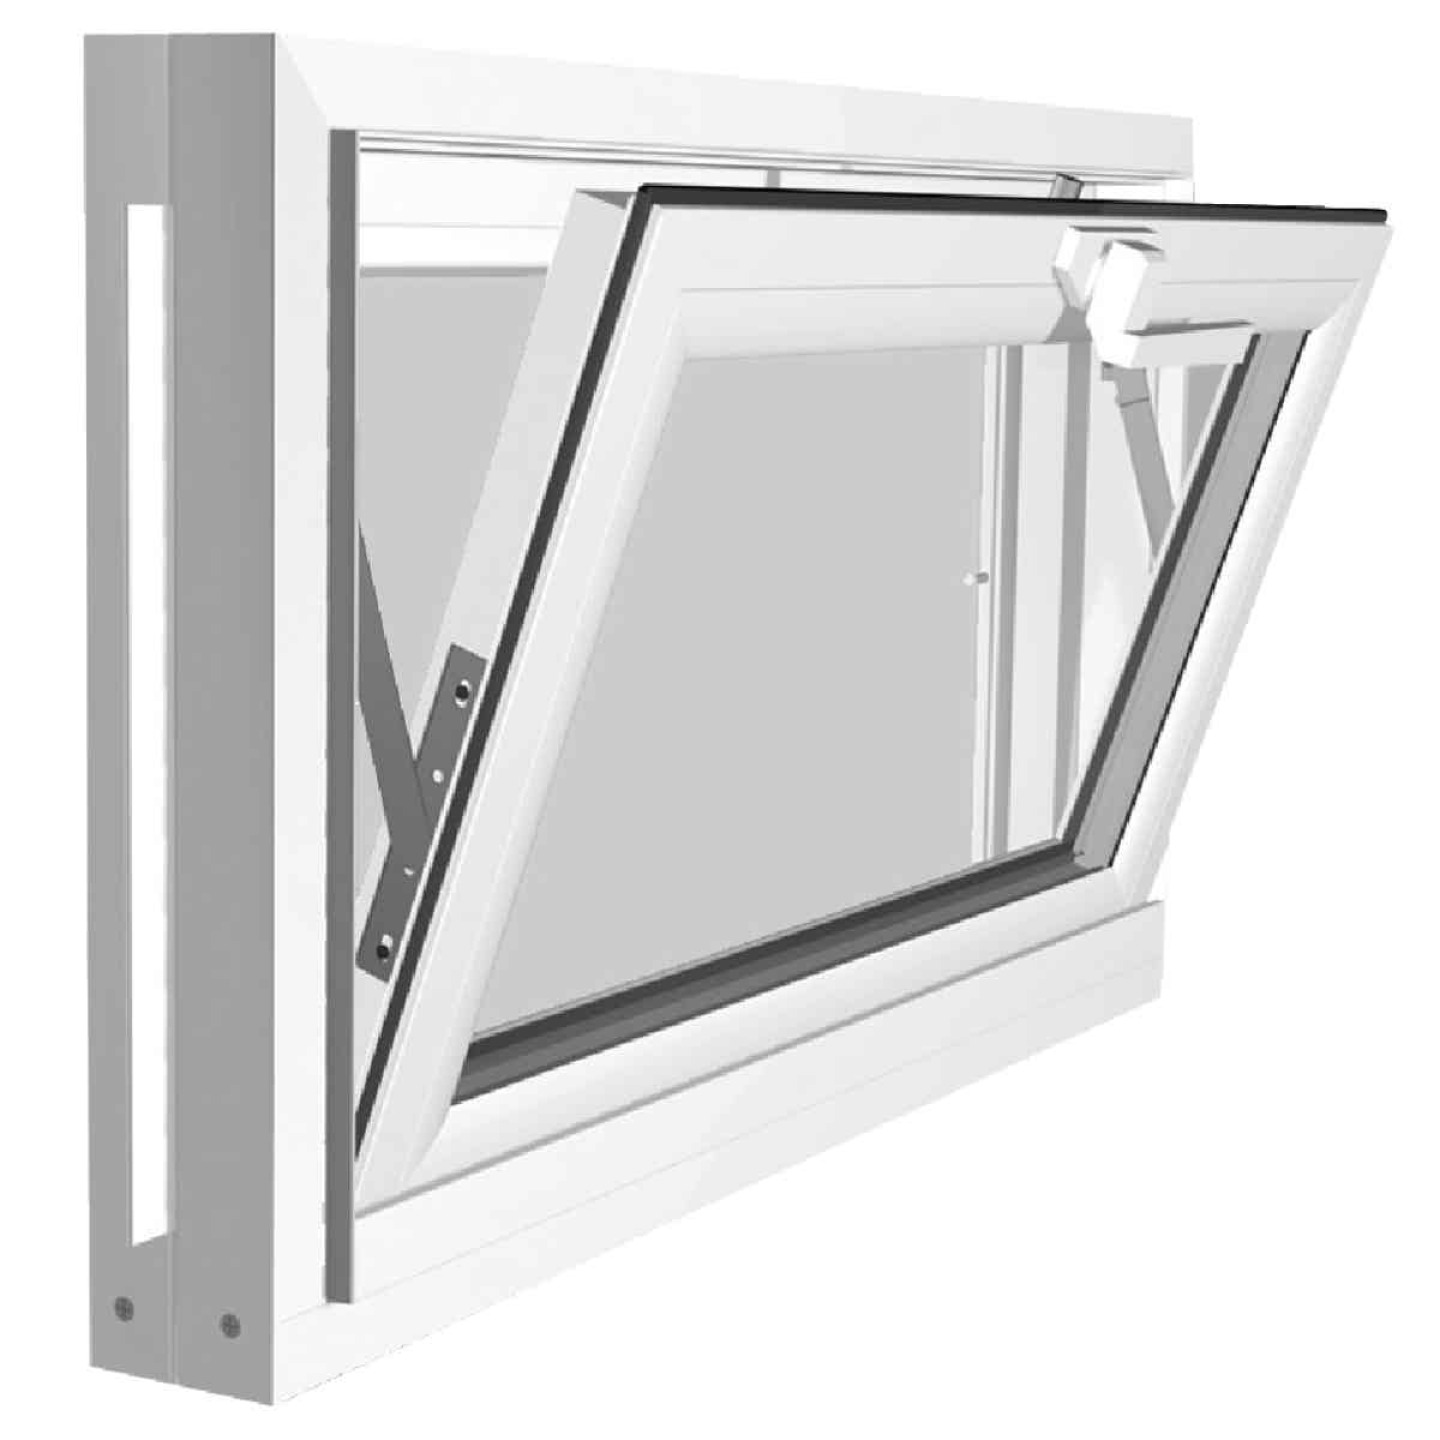 Northview Hemlock Hopper 32 In. W x 15-1/4 In. H White PVC Basement Window Image 2